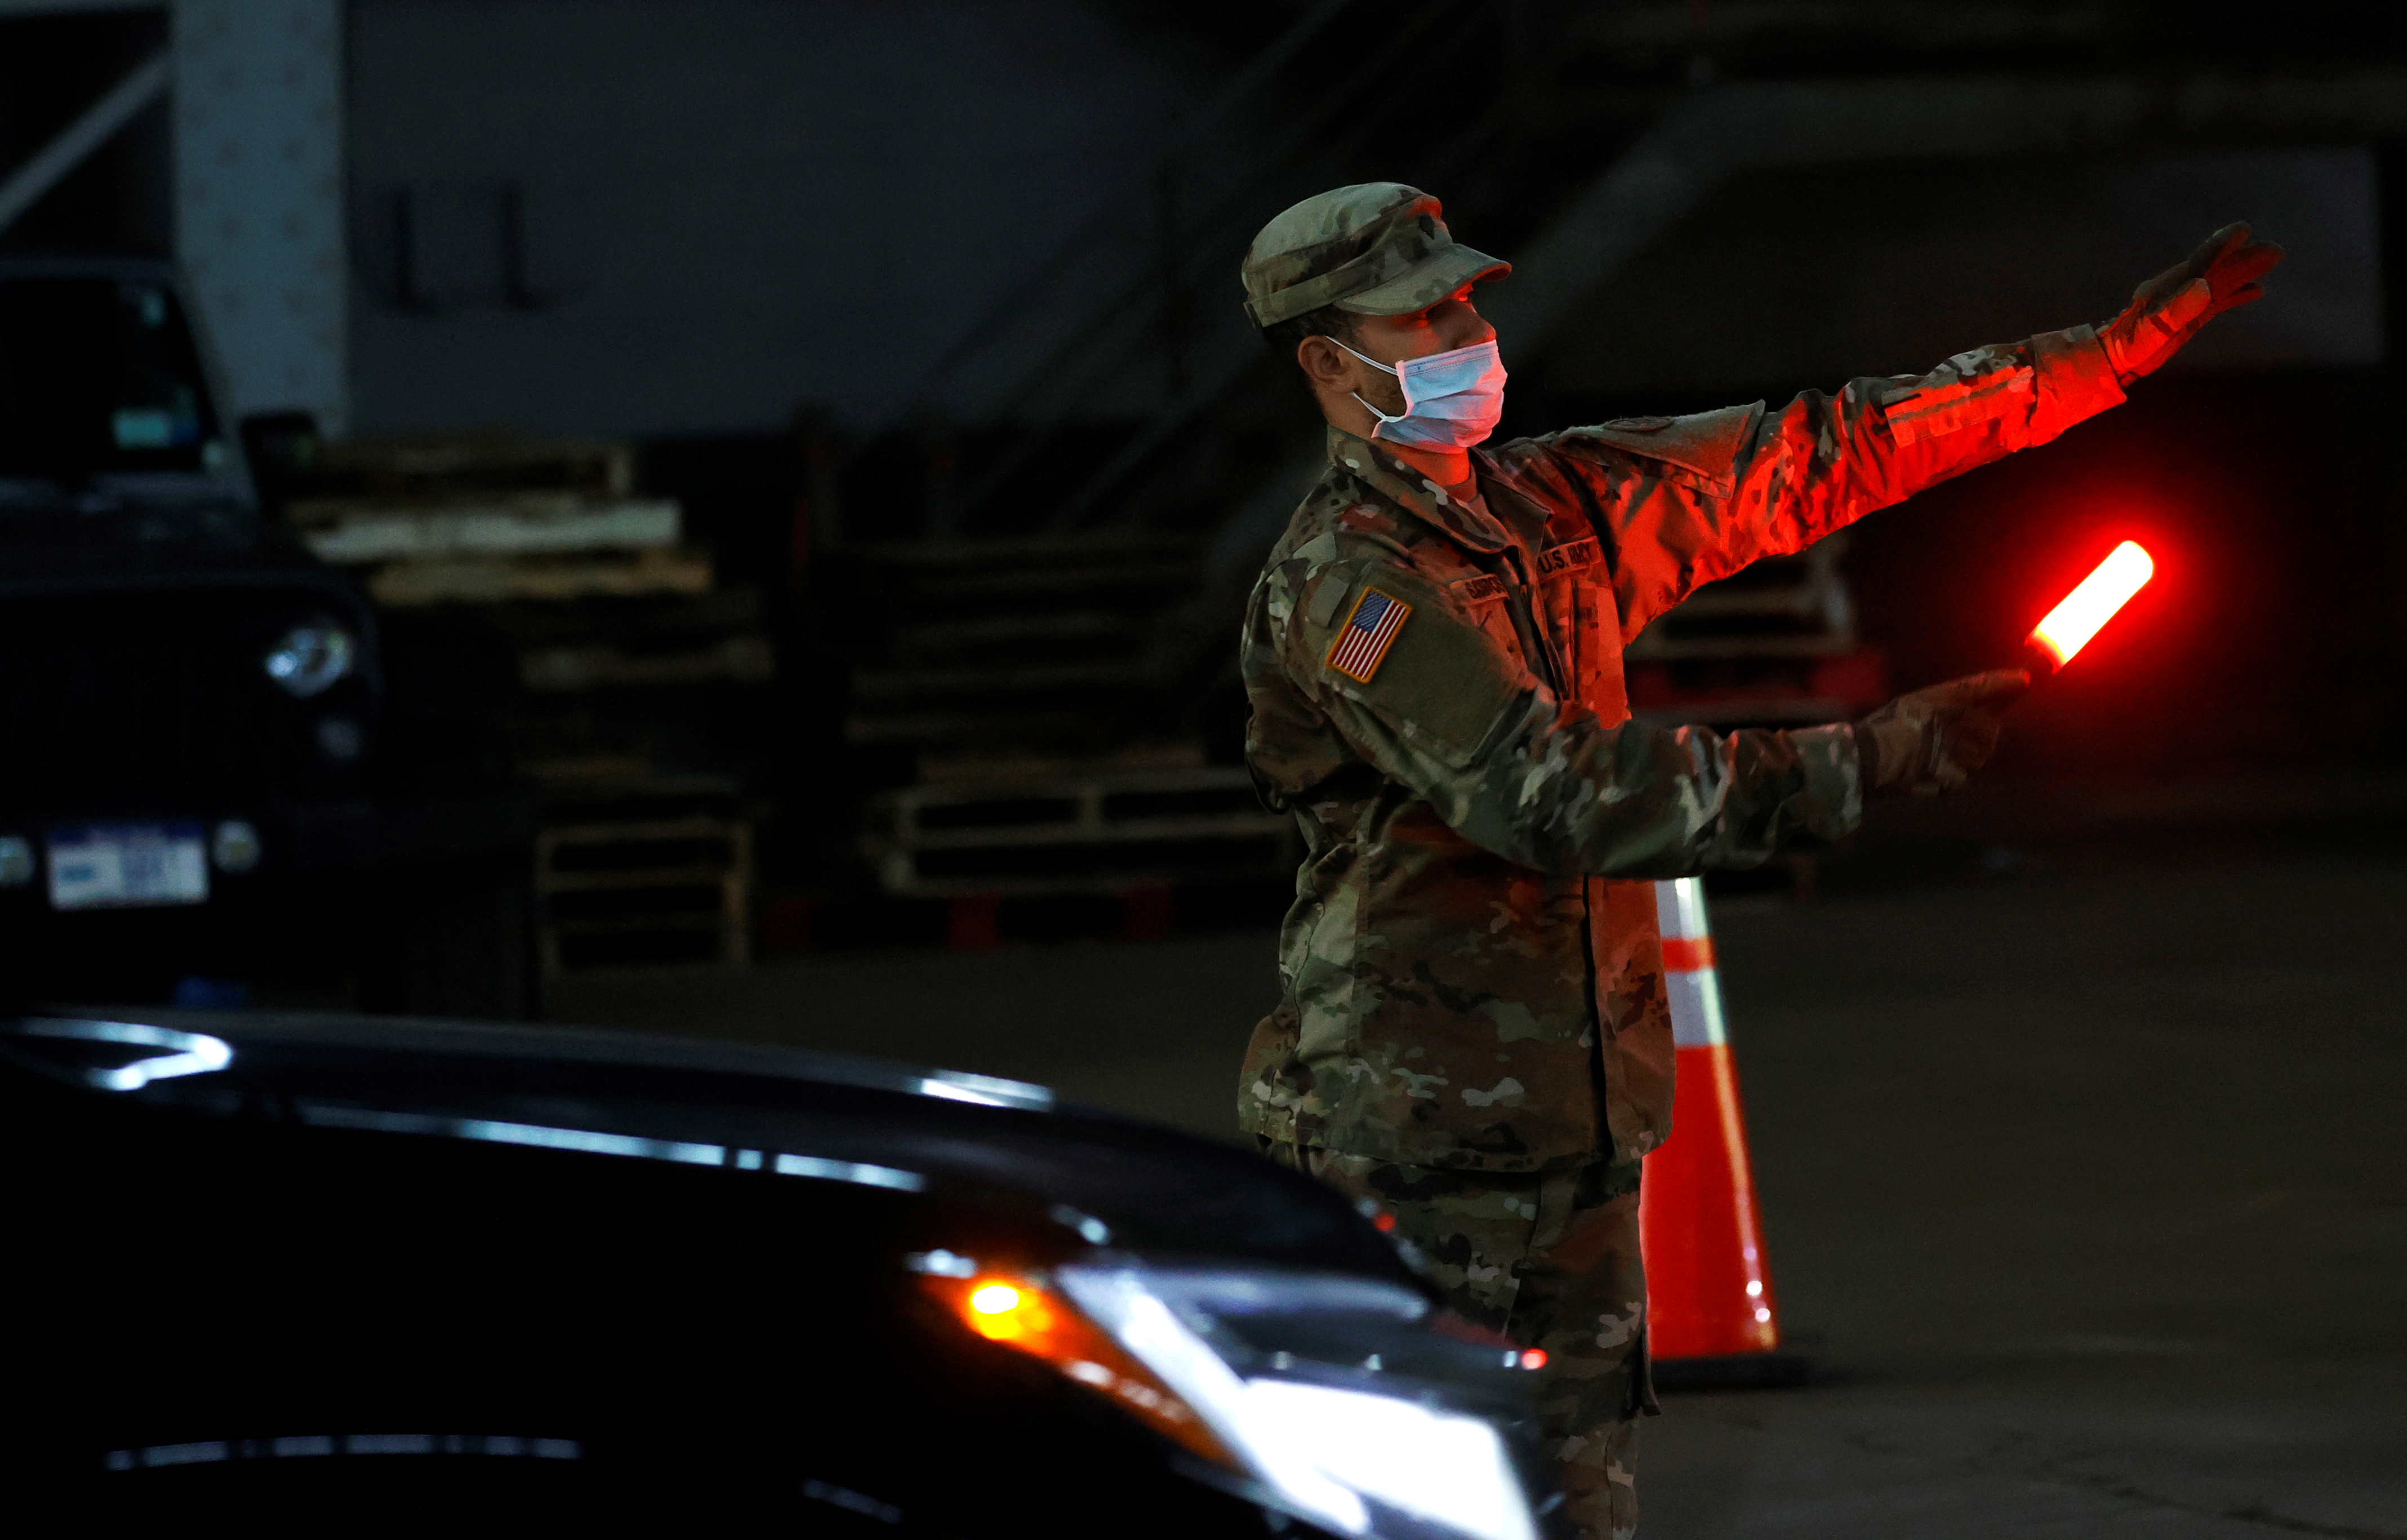 A U.S. Army National Guard soldier wears a protective face mask while directing vehicles to pick up food for delivery to residents in need, at the Kingsbridge Armory which is being used as a temporary food distribution center during the outbreak of the coronavirus disease (COVID-19) in the Bronx borough of New York City, New York, U.S., April 21, 2020. REUTERS/Mike Segar